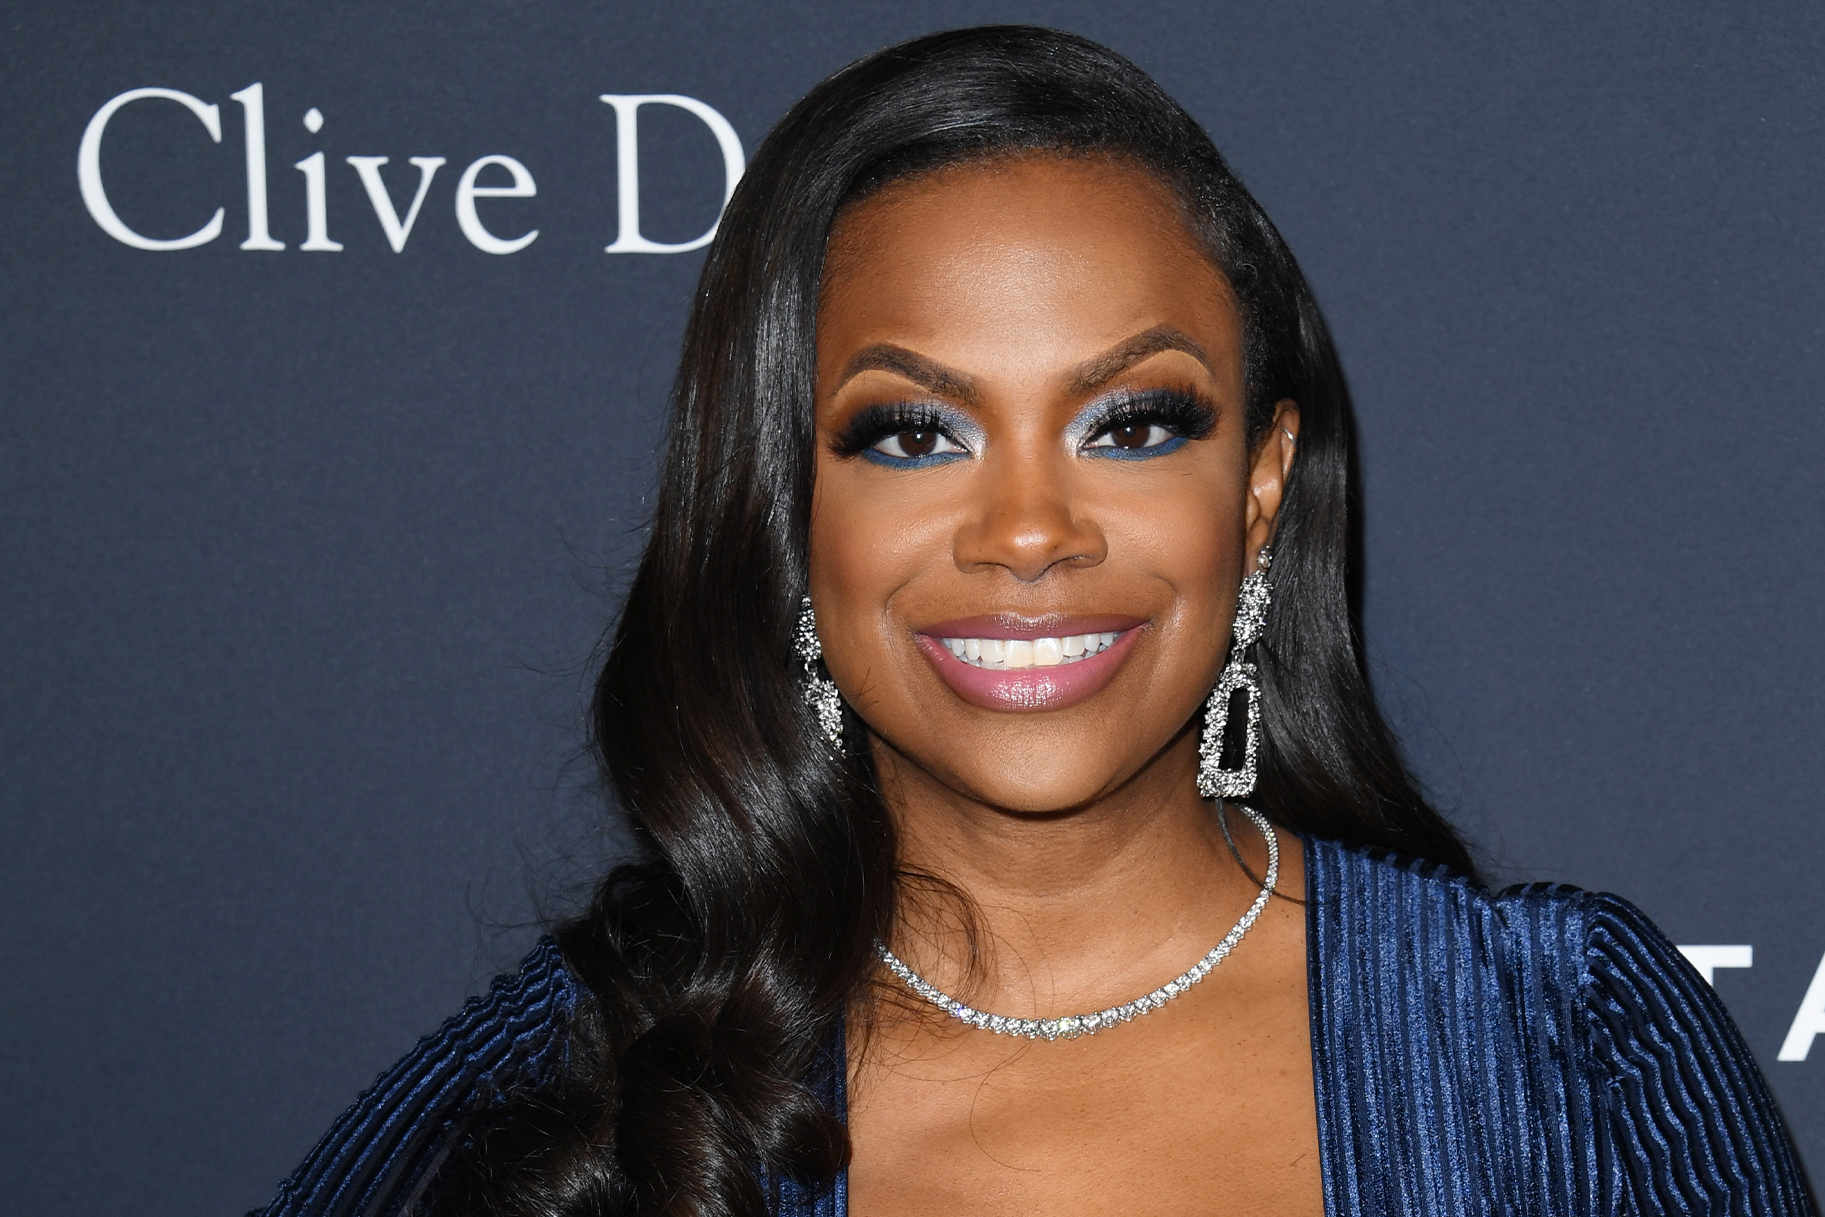 kandi-burruss-fans-are-having-a-blast-seeing-her-faces-in-these-photos-see-them-here